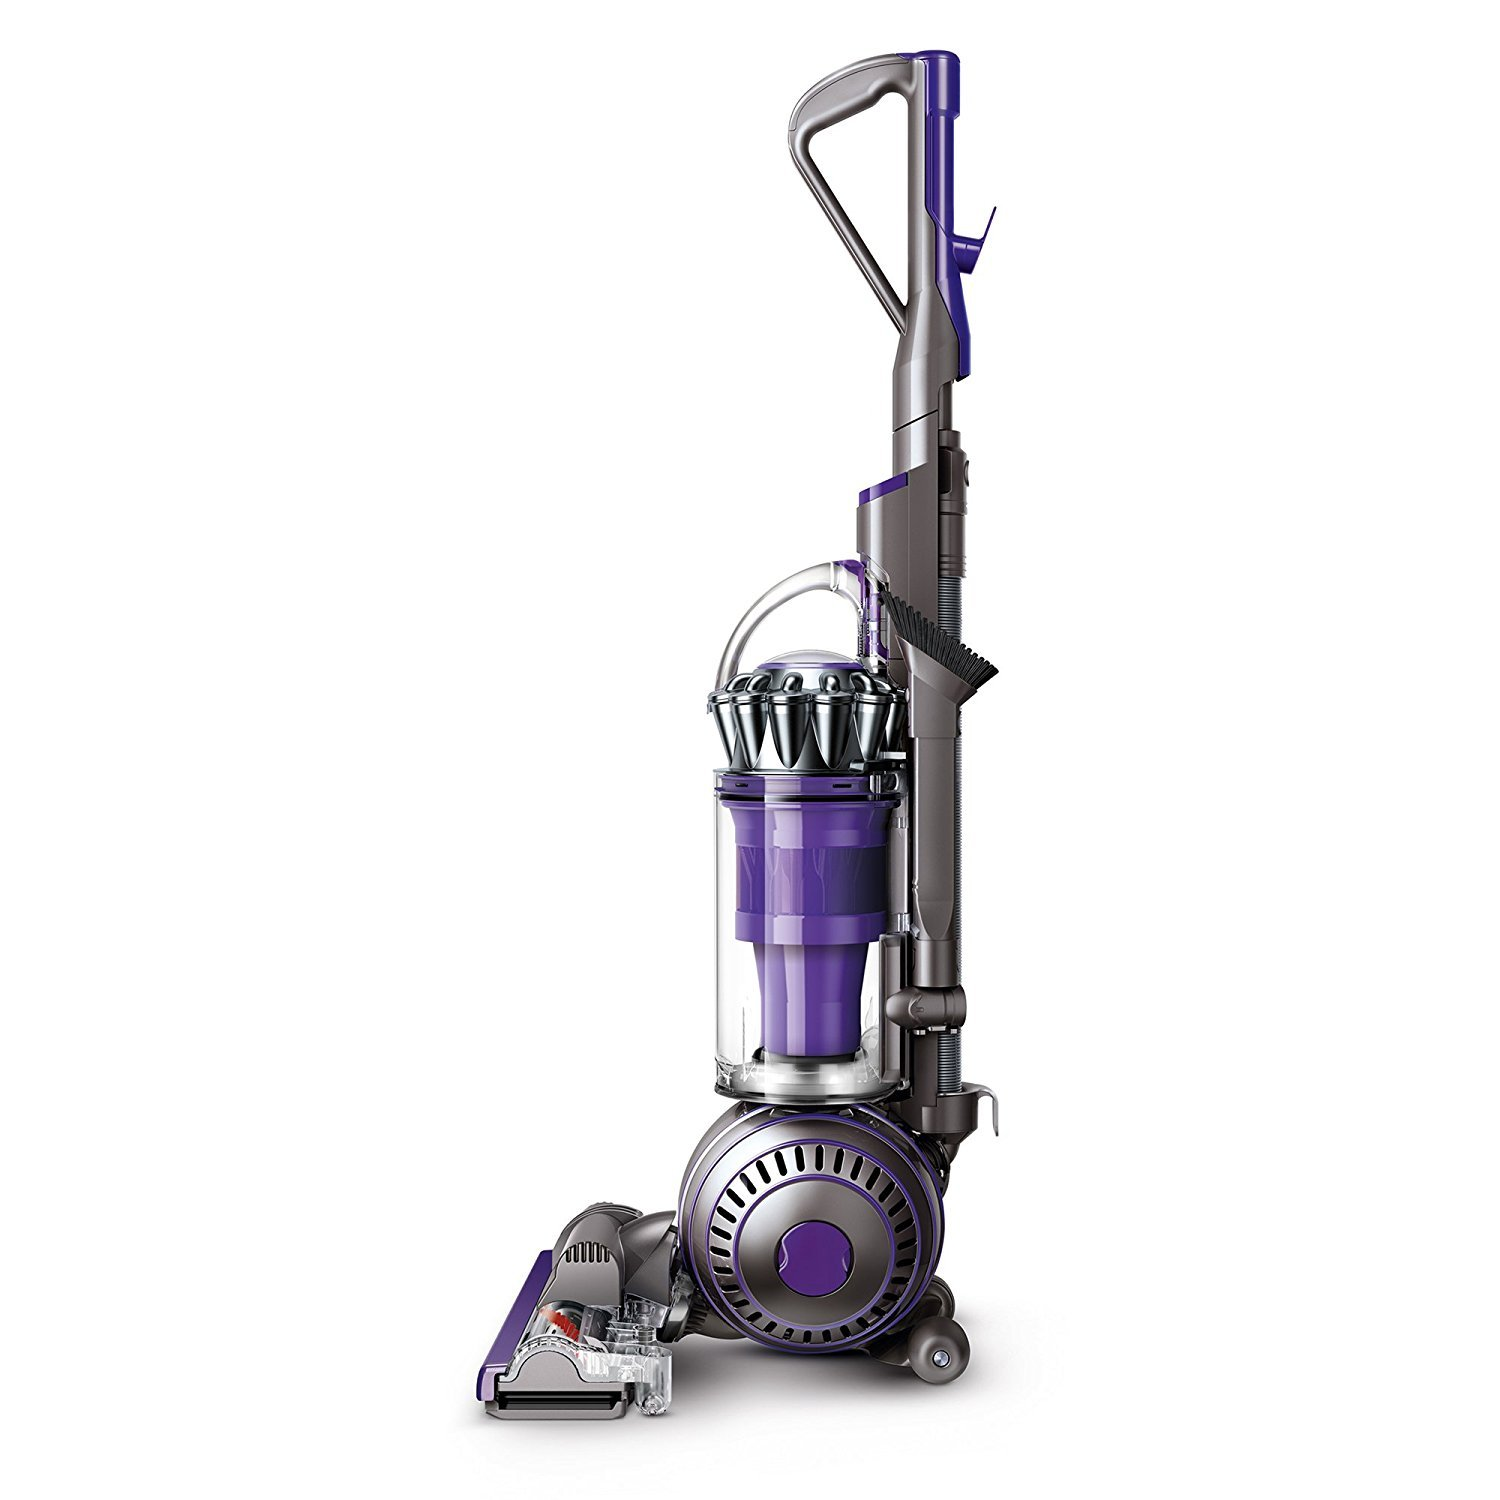 Dyson Ball Animal 2 Upright Vacuum, Iron/Purple (Certified Refurbished) by Dyson (Image #2)